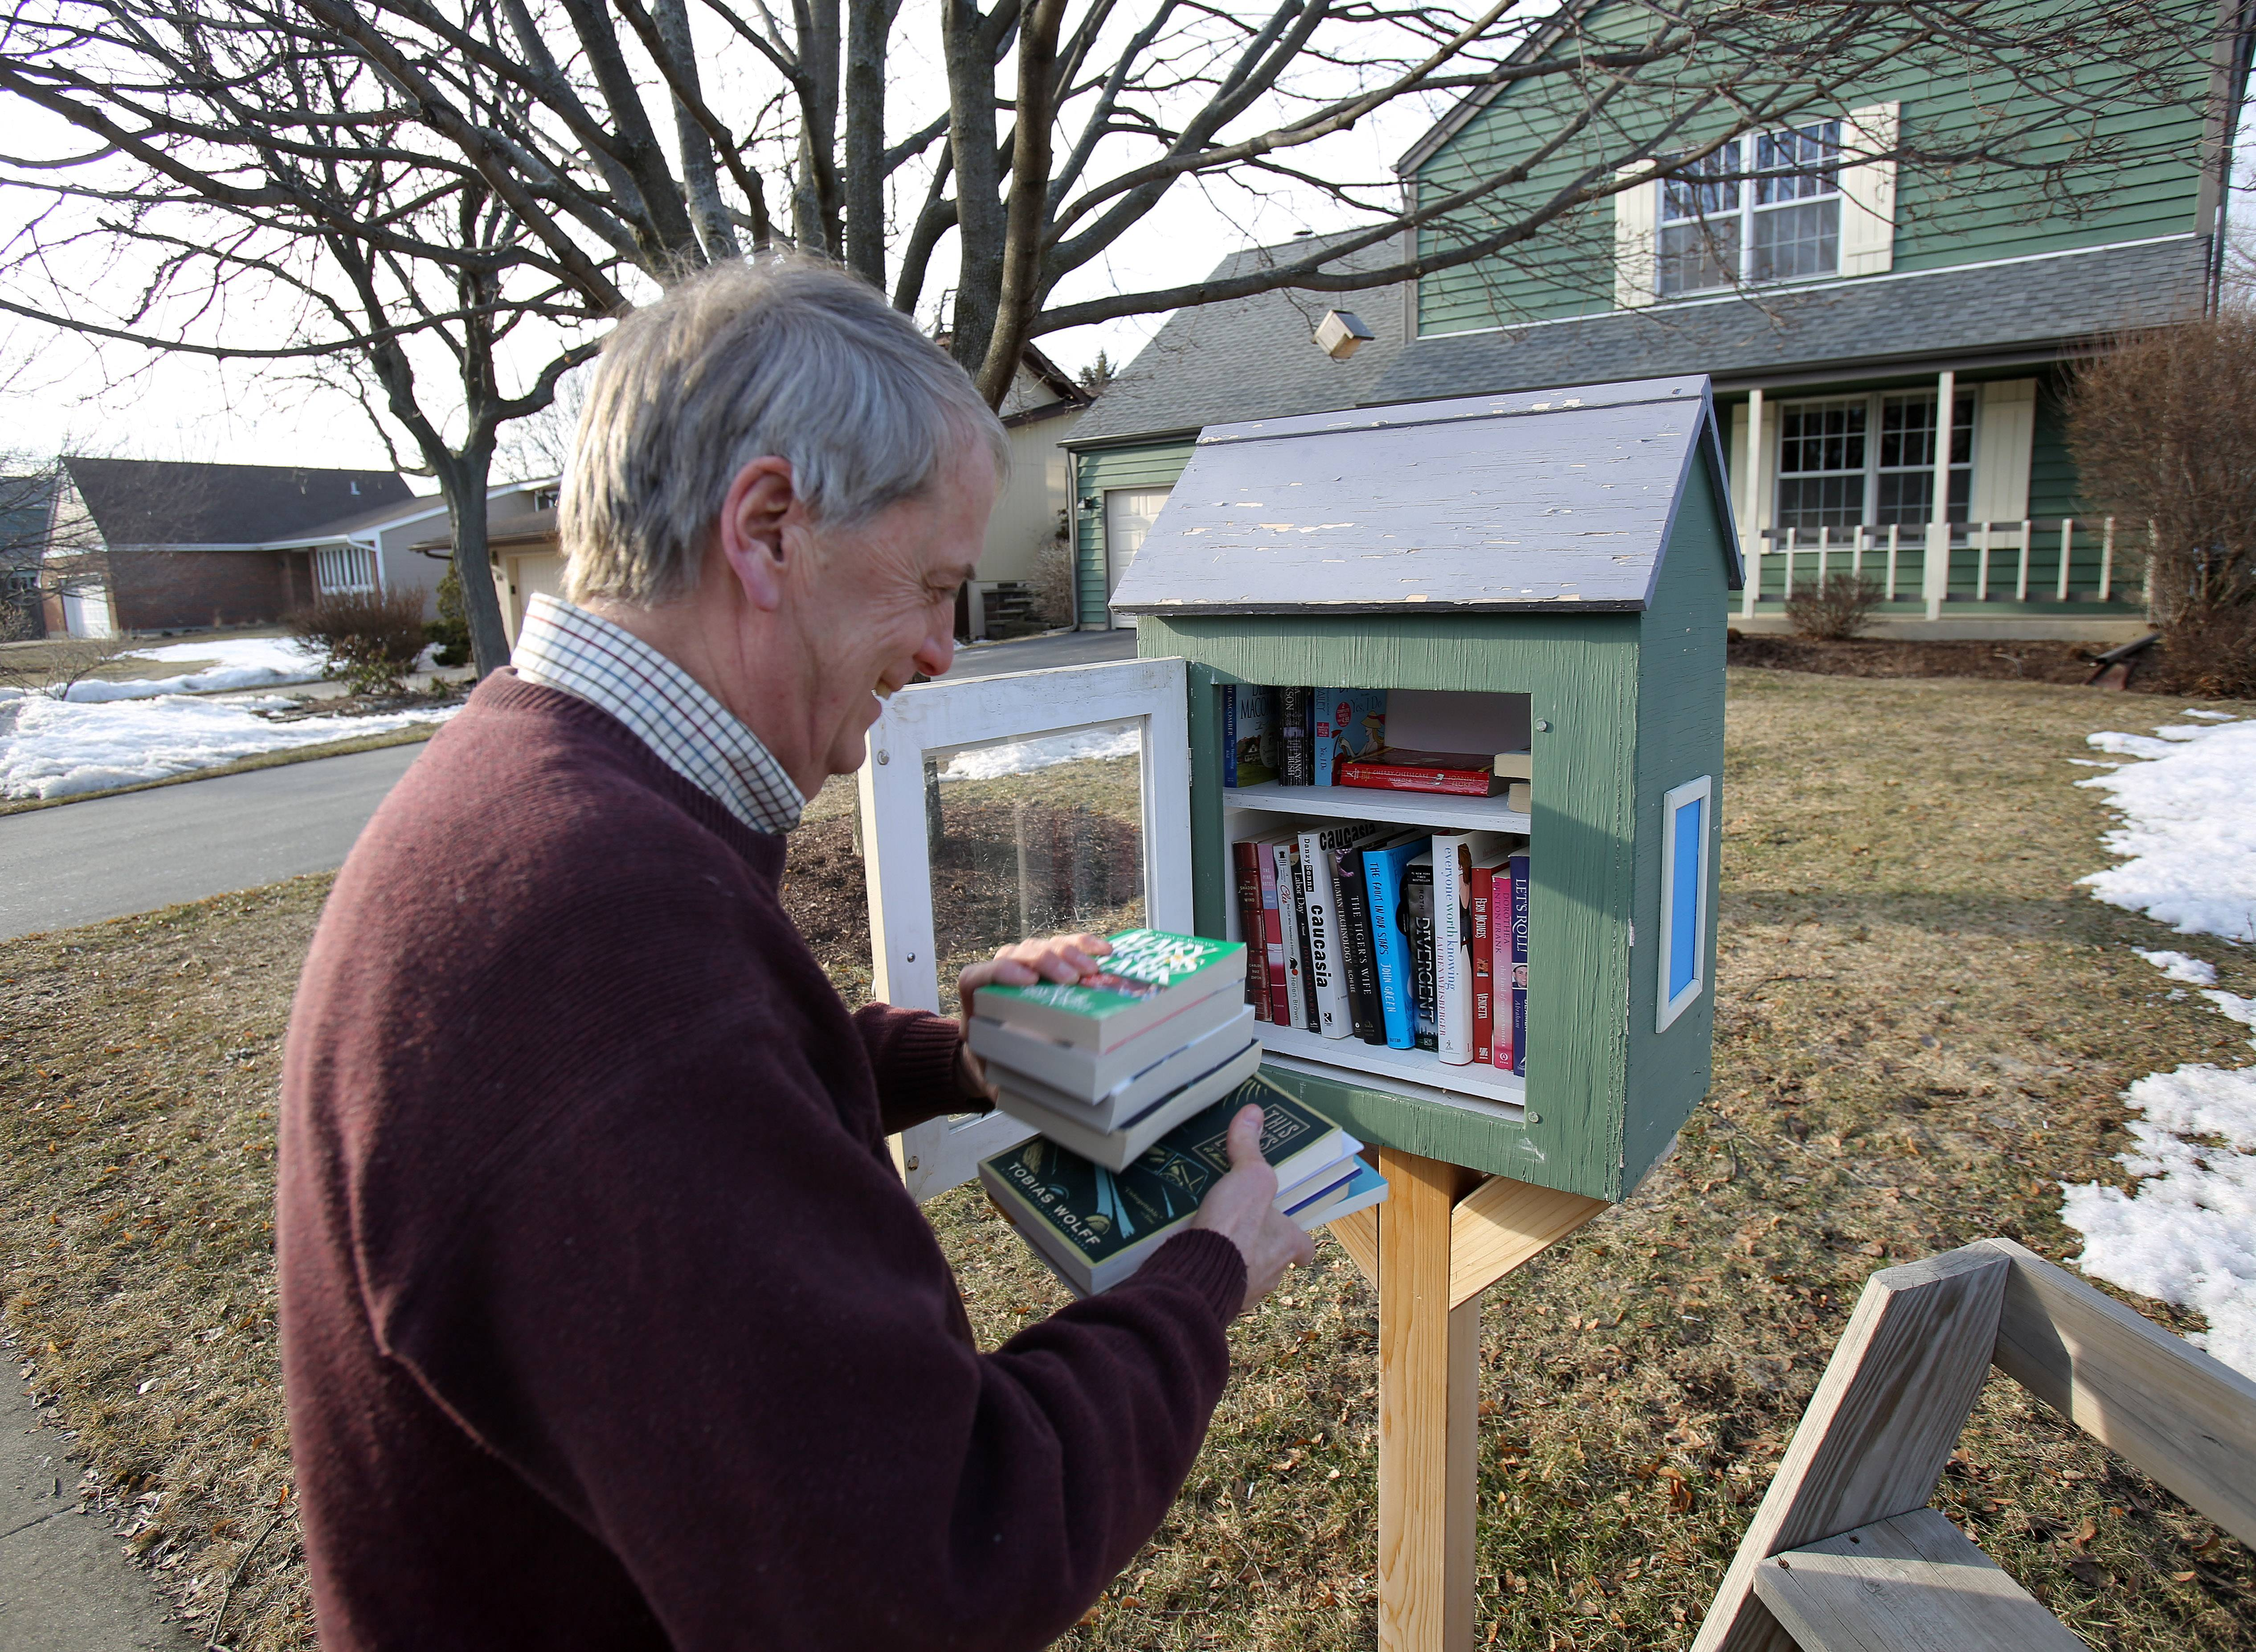 Brian Smith of Third Lake stocks the shelves of his Little Free Library. It sits in front of his house.